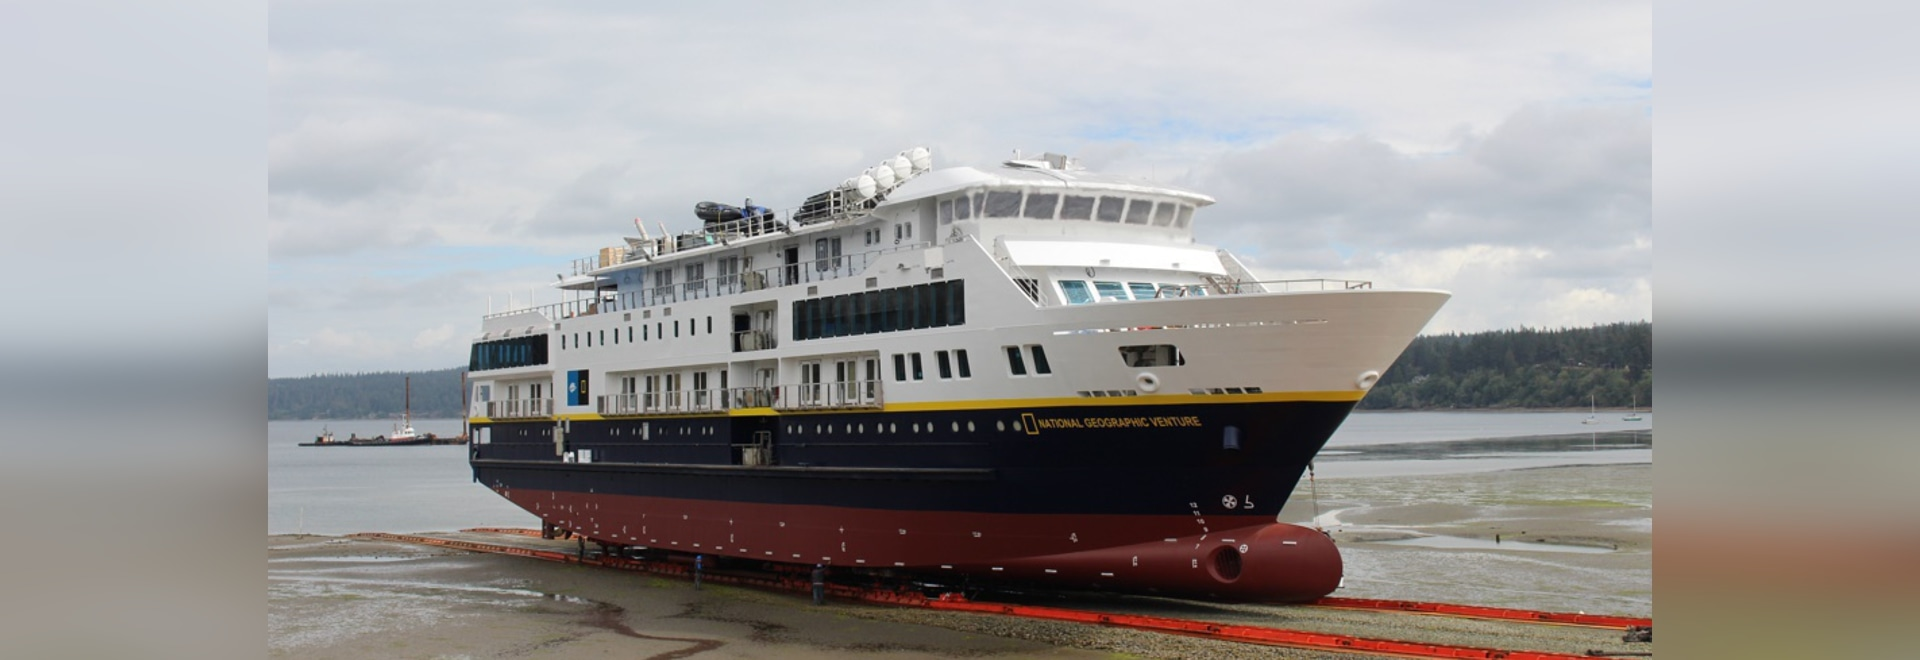 The second of two expedition cruise vessels for Lindblad Expeditions recently launched at Nichols Brothers Boat Builders' Freeland, Wash., shipyard. Nichols Brothers Boat Builders photo